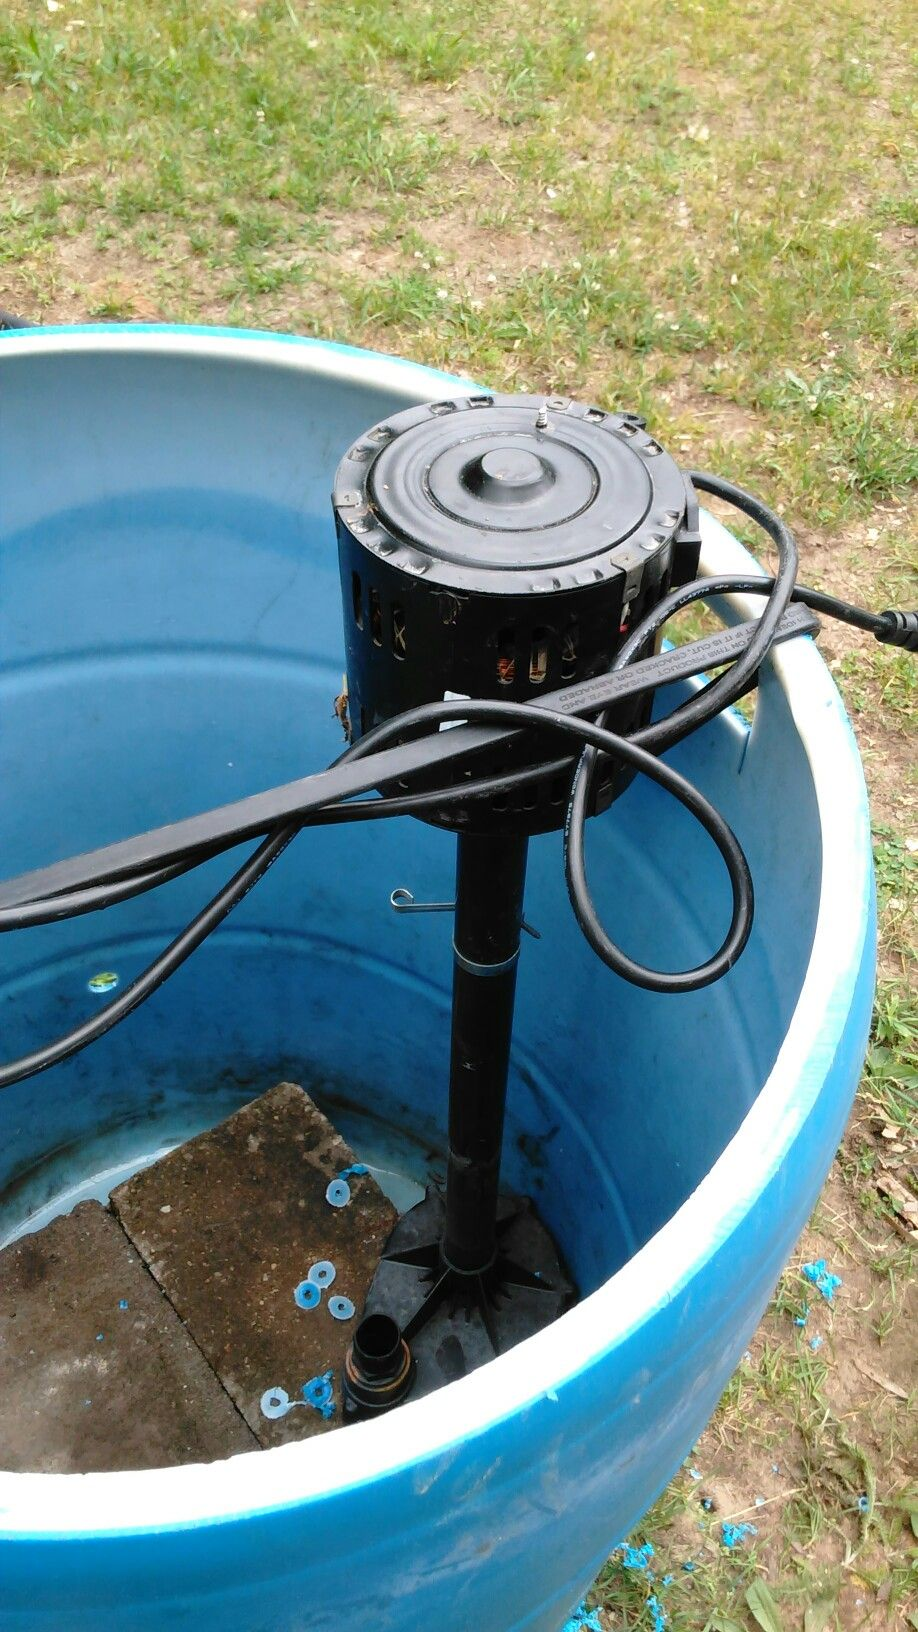 Bungie strap to hold pump in the barrel | Sump pump